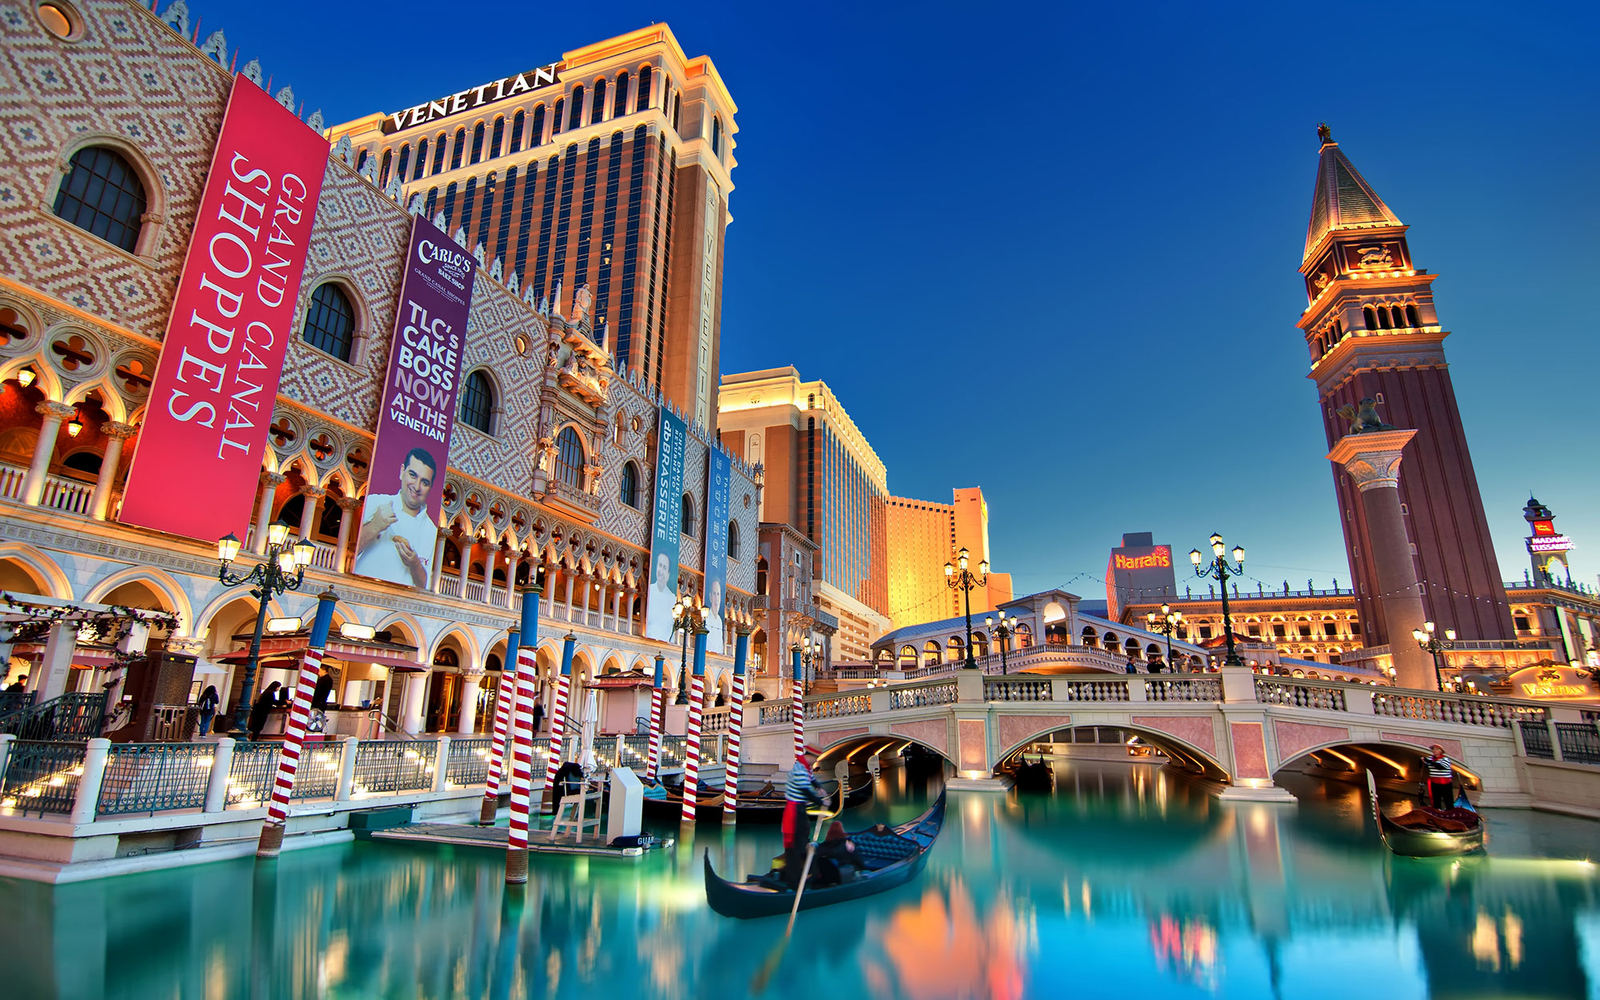 The canals at the Venetian Hotel in Las Vegas, NV